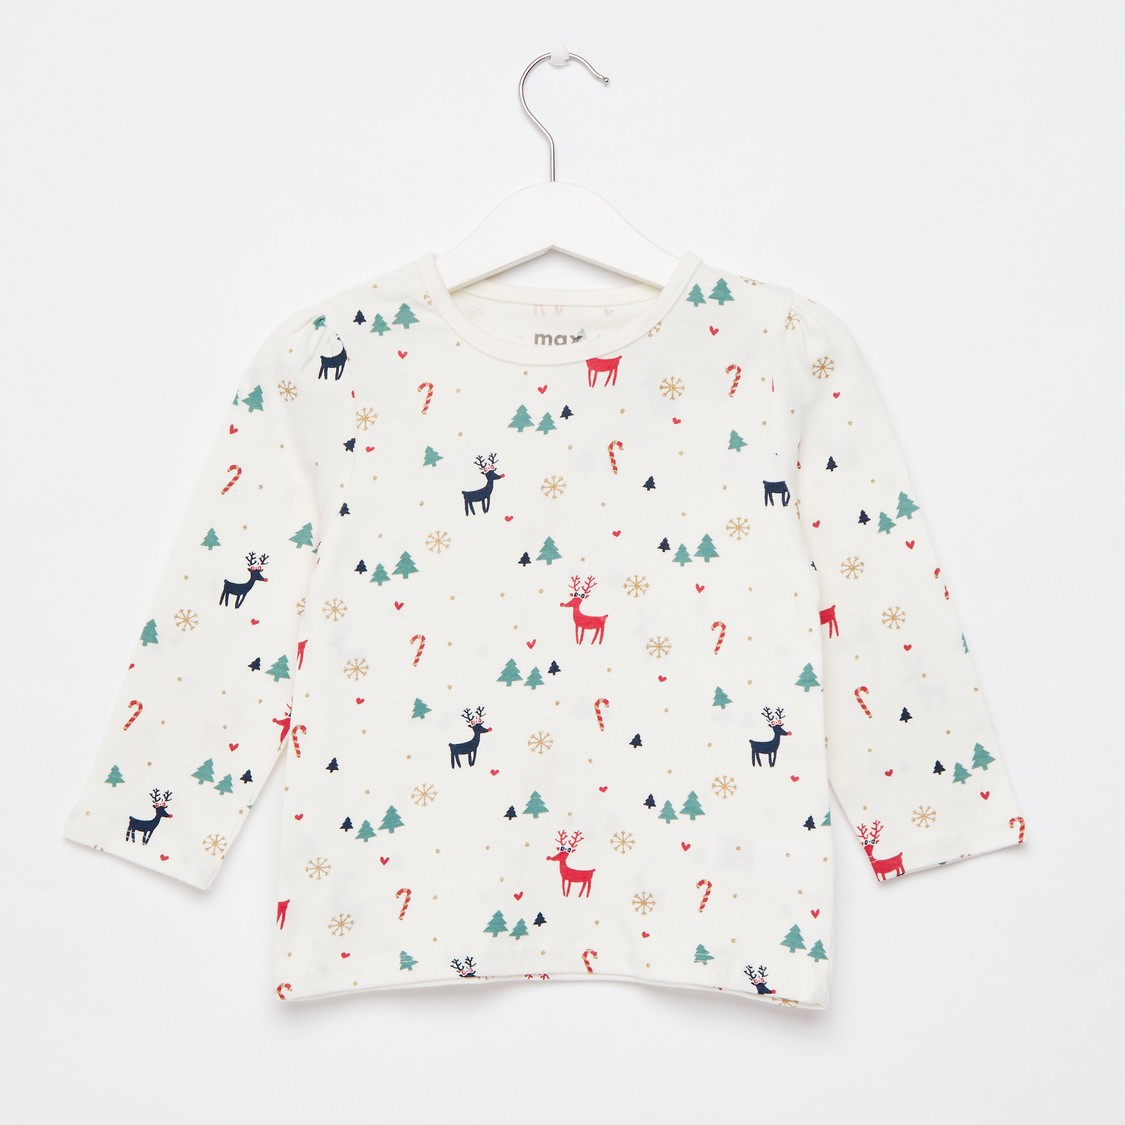 All-Over Print T-shirt with Round Neck and Long Sleeves